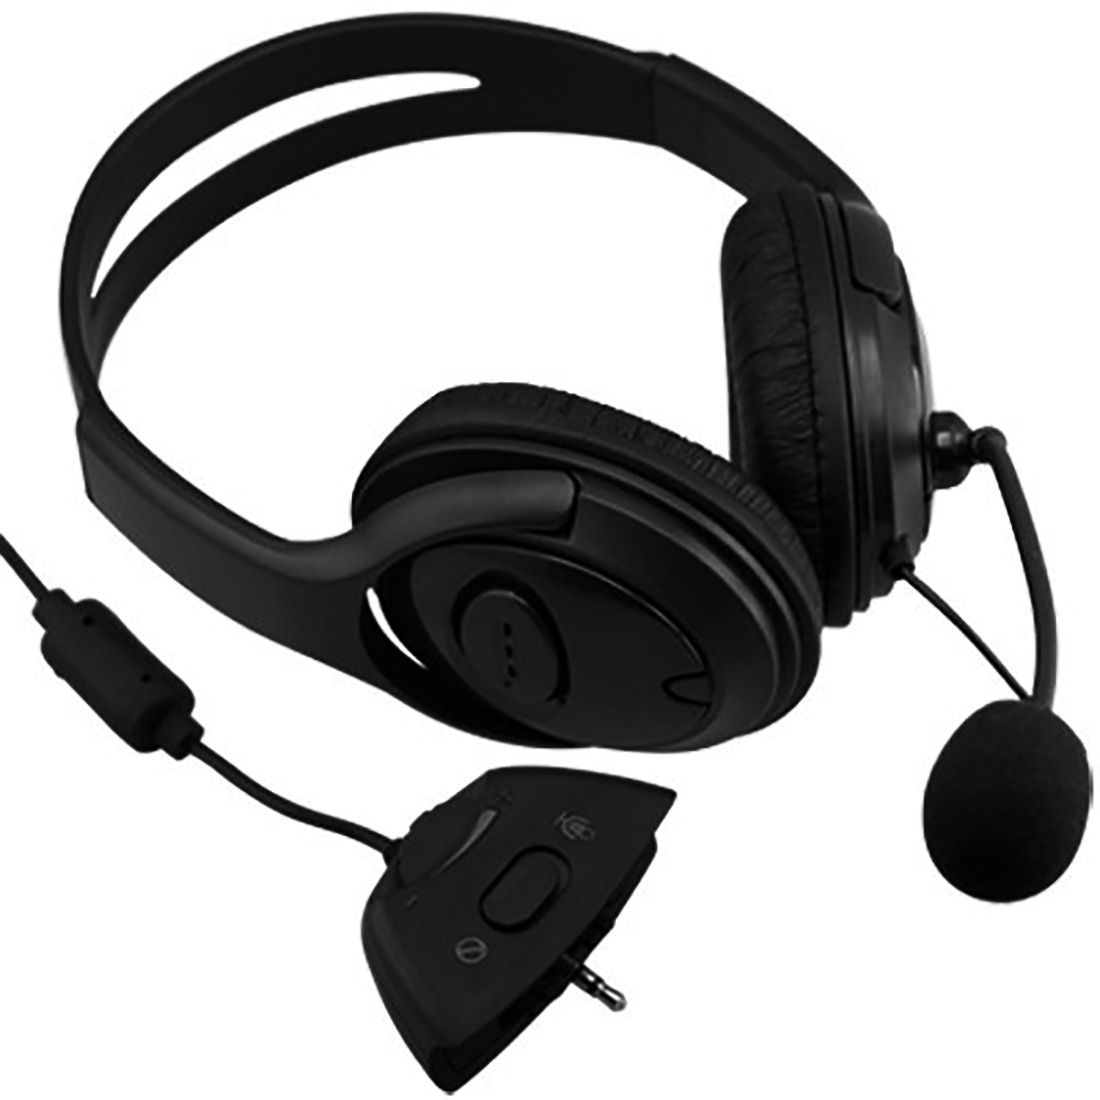 Marsnaska 2017 Best Selling Protable Xbox360 Wired Gaming Chat Dual Headset Headphone Microphone For Xbox 360 Computer Black Headphones Microphone Best Headsetheadset Headphone Aliexpress